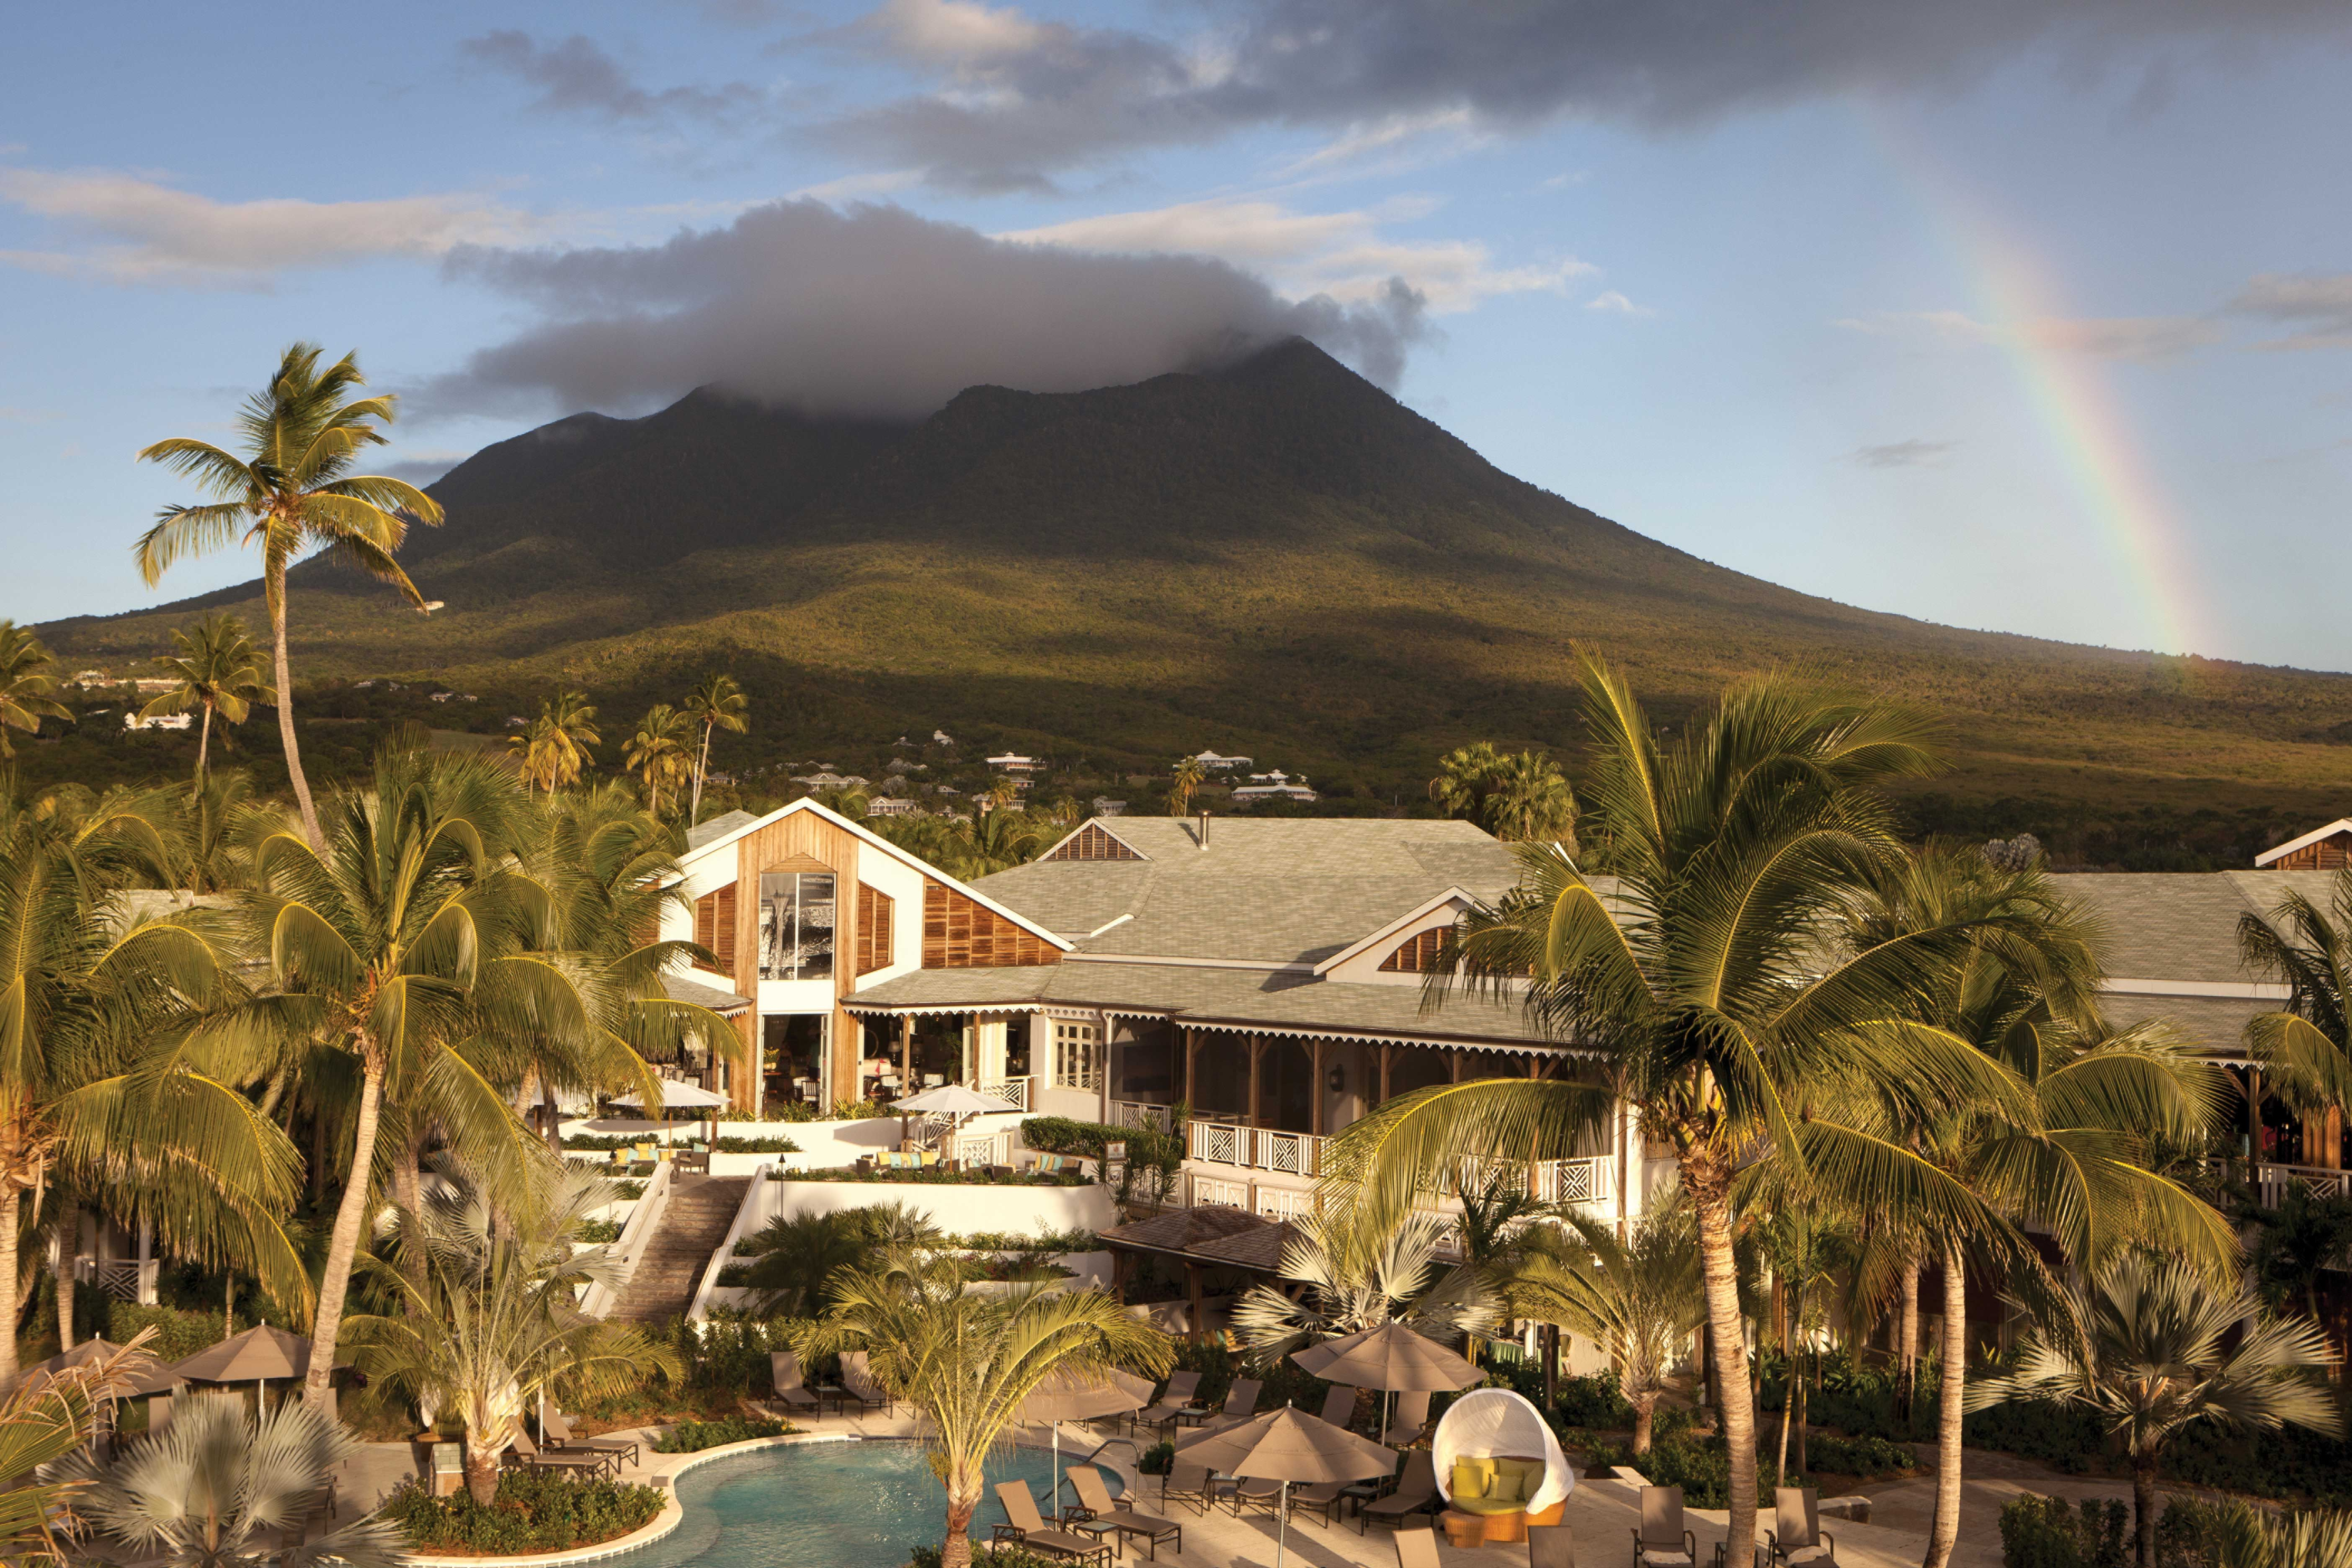 Hotel Nevis Wellness And Spa How To Stay At Four Seasons Resorts For Less Than 350 Per Night